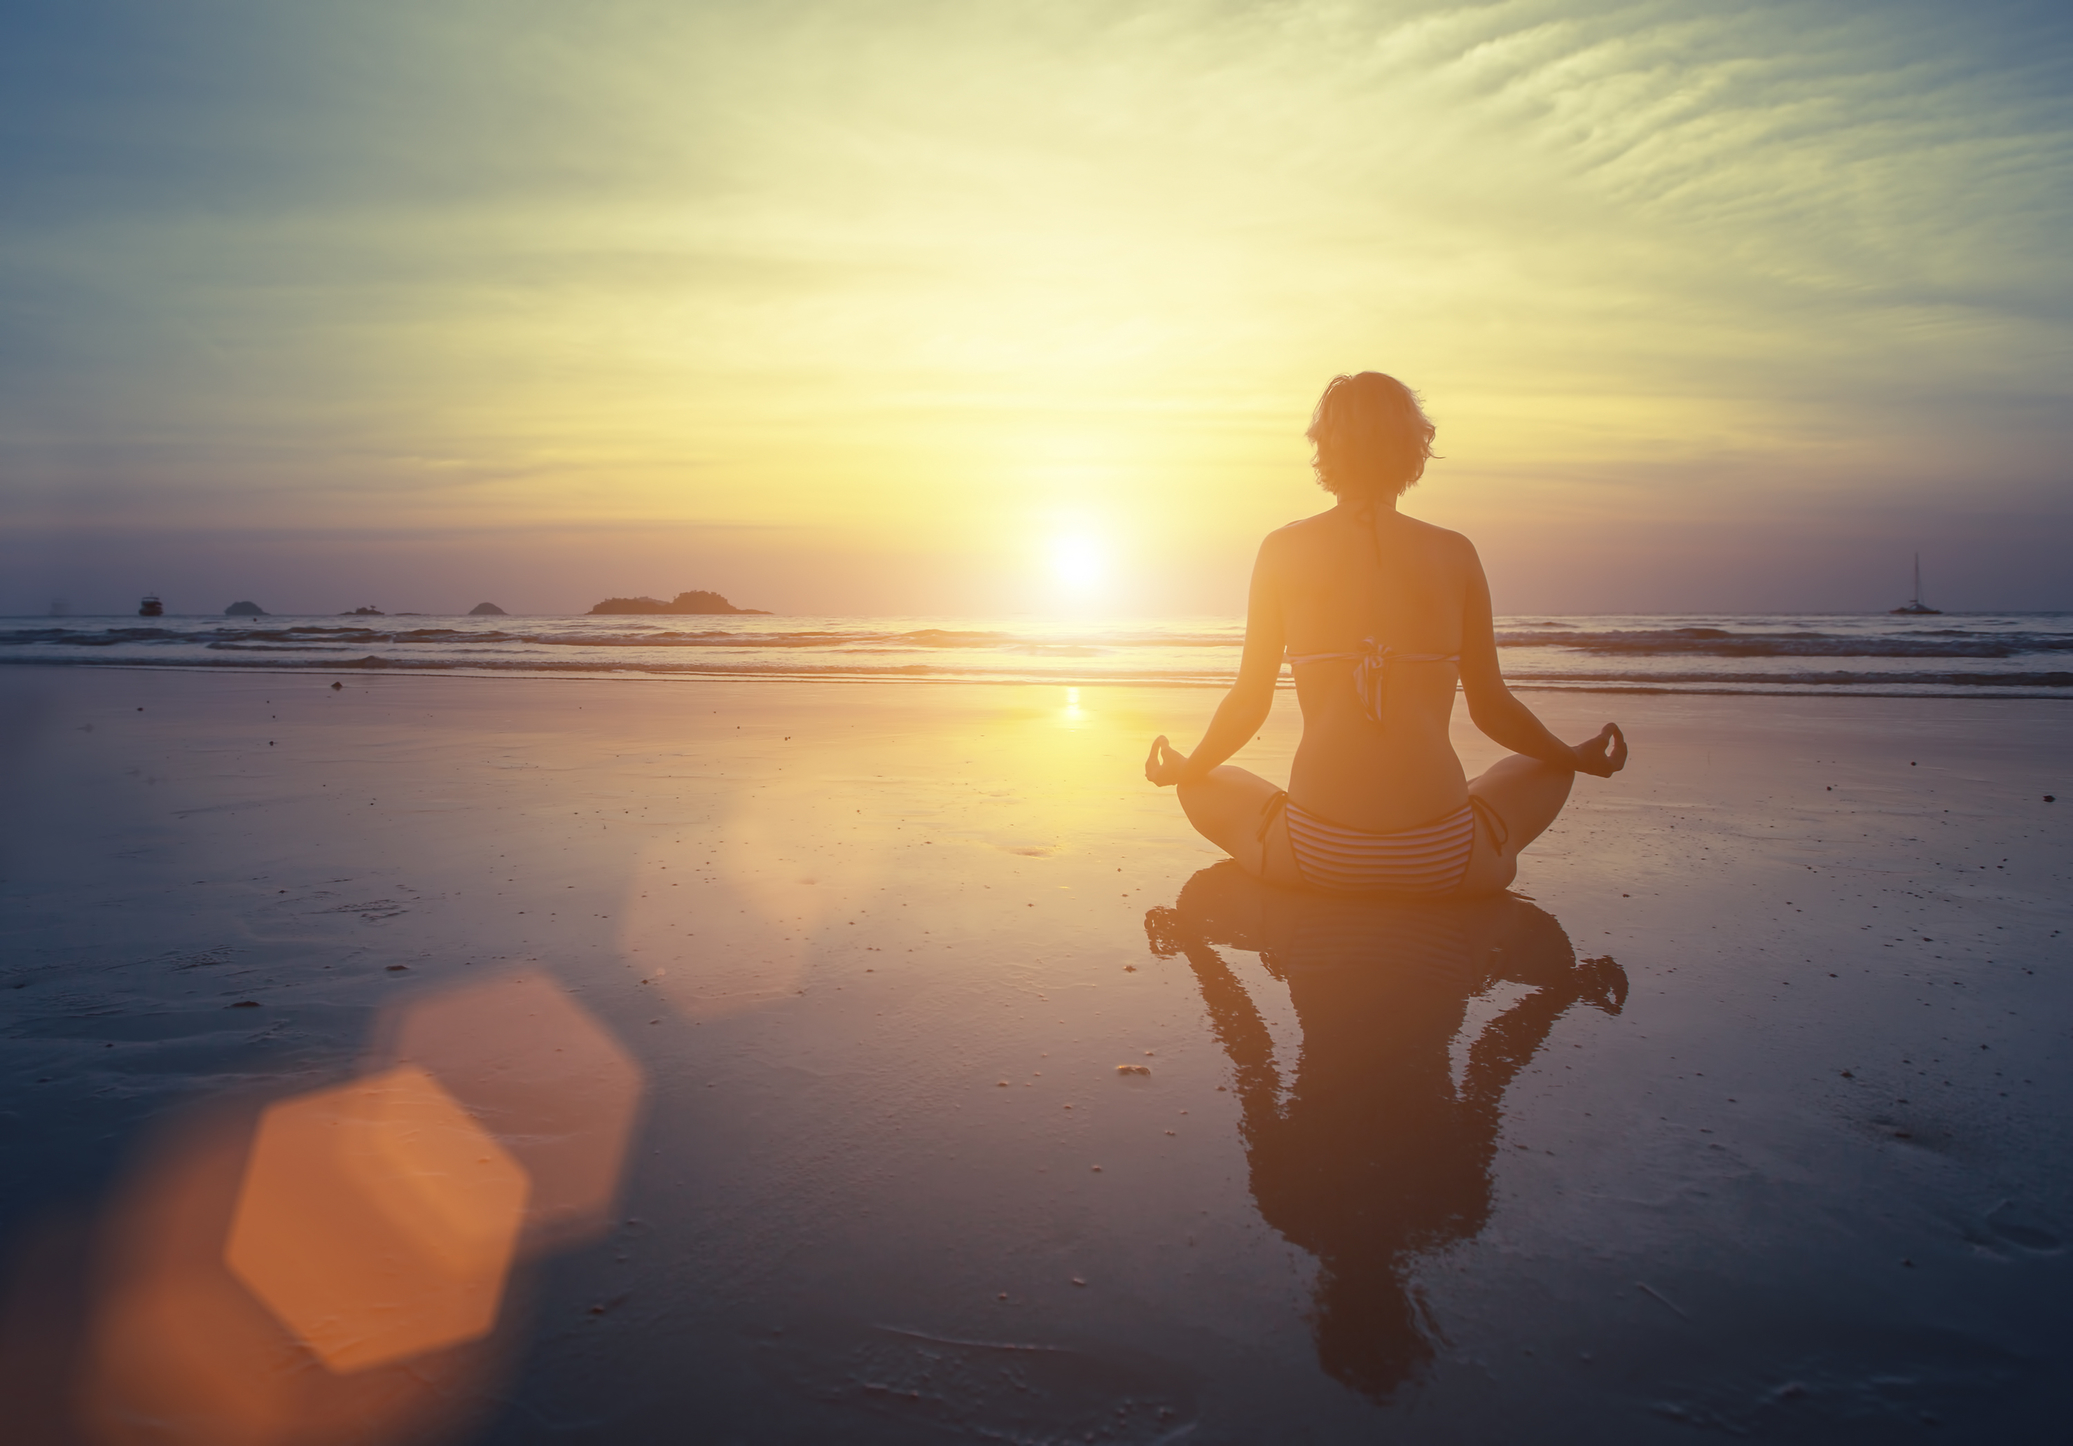 Distance Learning Classes - We are excited to now offer a variety of on-line distance education courses. Learn the foundations of NeuroMeditation, work with guided practices, expand your teaching toolbox, and earn CEU's